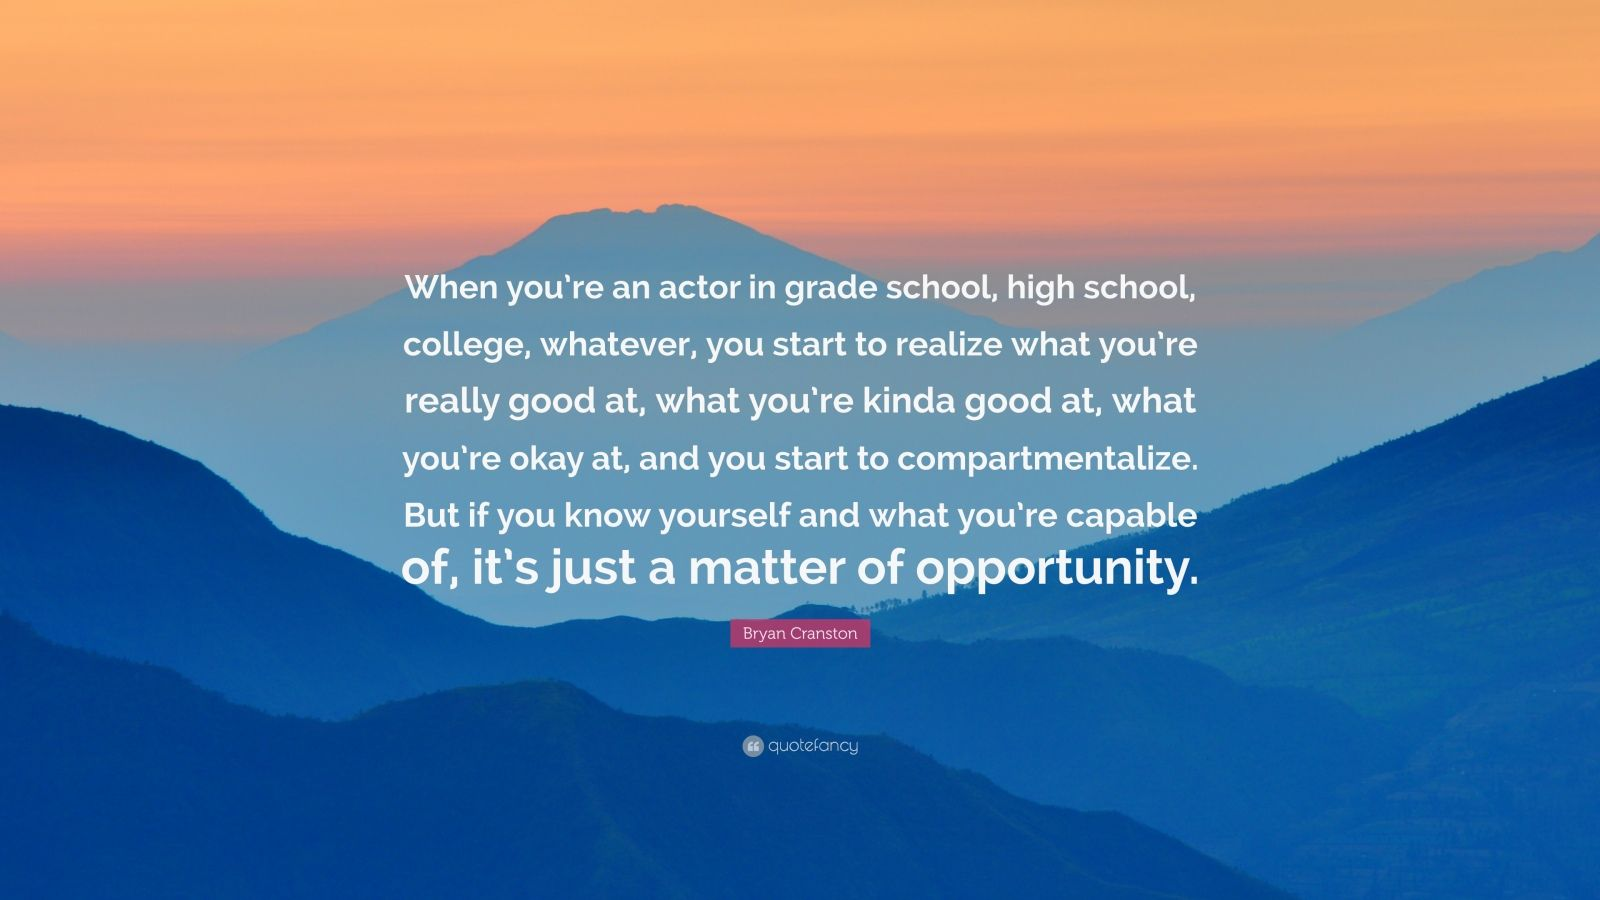 """Bryan Cranston Quote: """"When you're an actor in grade school, high school, college, whatever, you start to realize what you're really good at, what you're kinda good at, what you're okay at, and you start to compartmentalize. But if you know yourself and what you're capable of, it's just a matter of opportunity."""""""